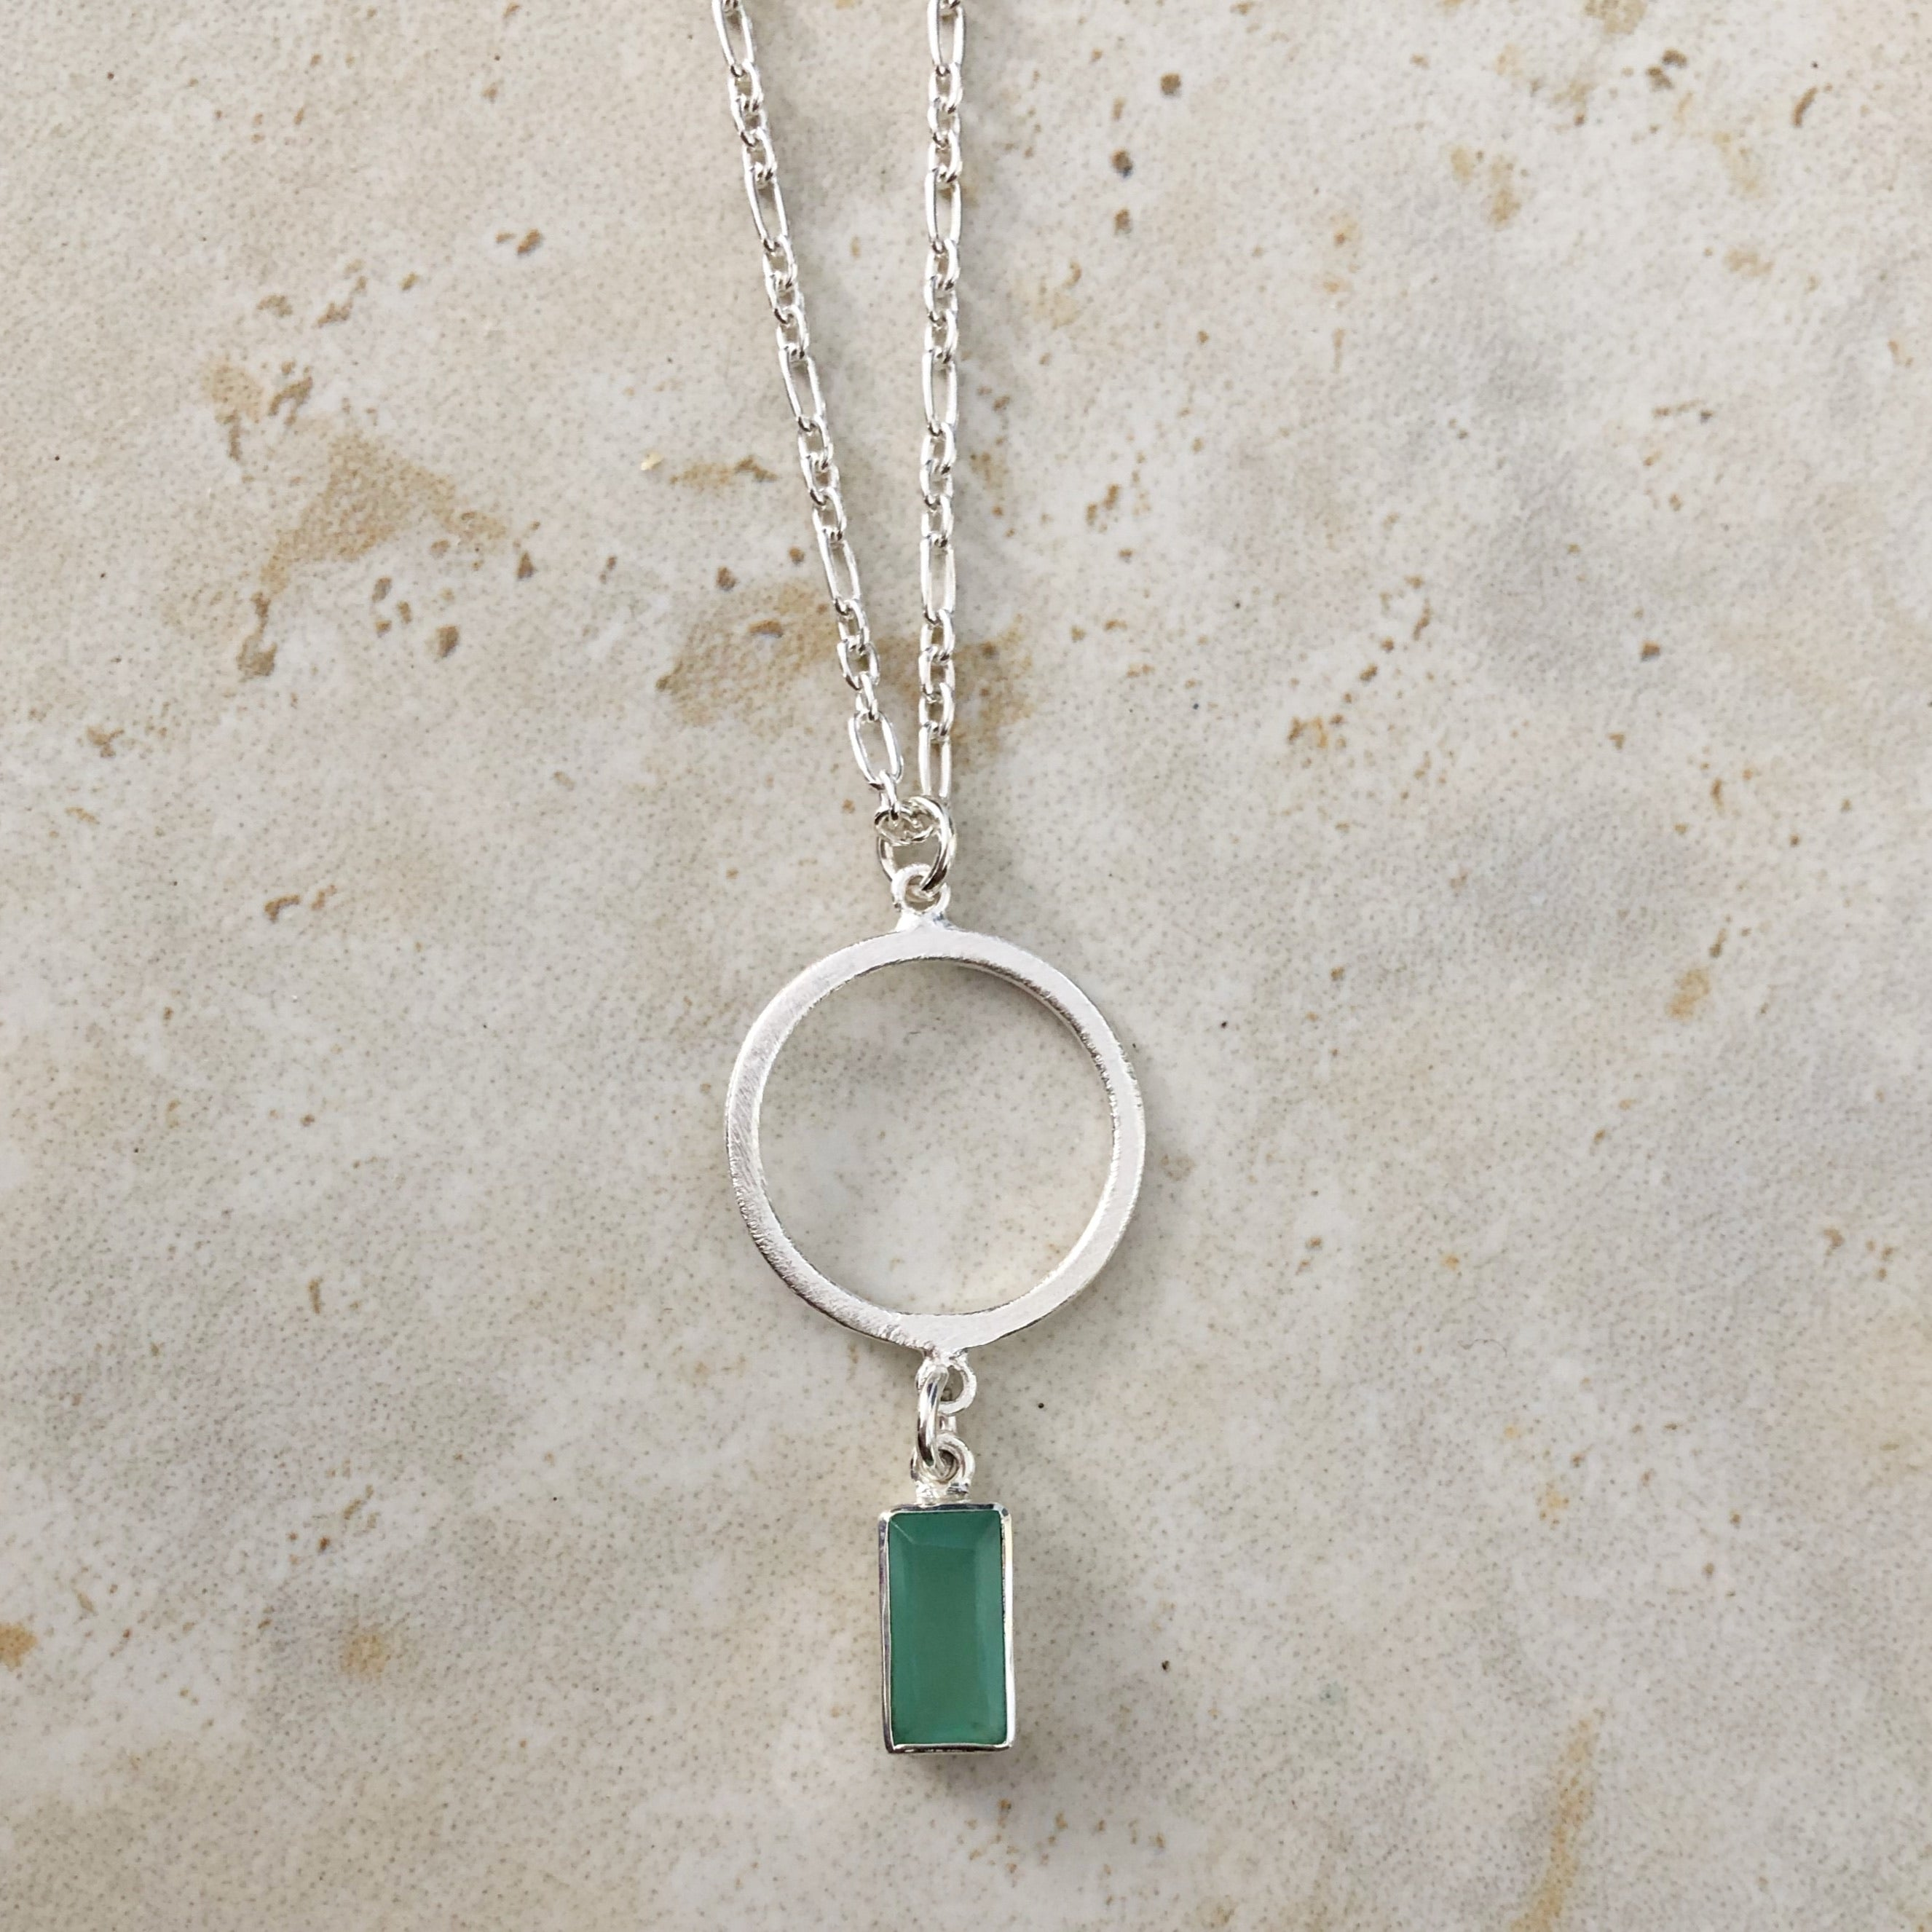 ARIE NECKLACE - Elizabeth Burry Design